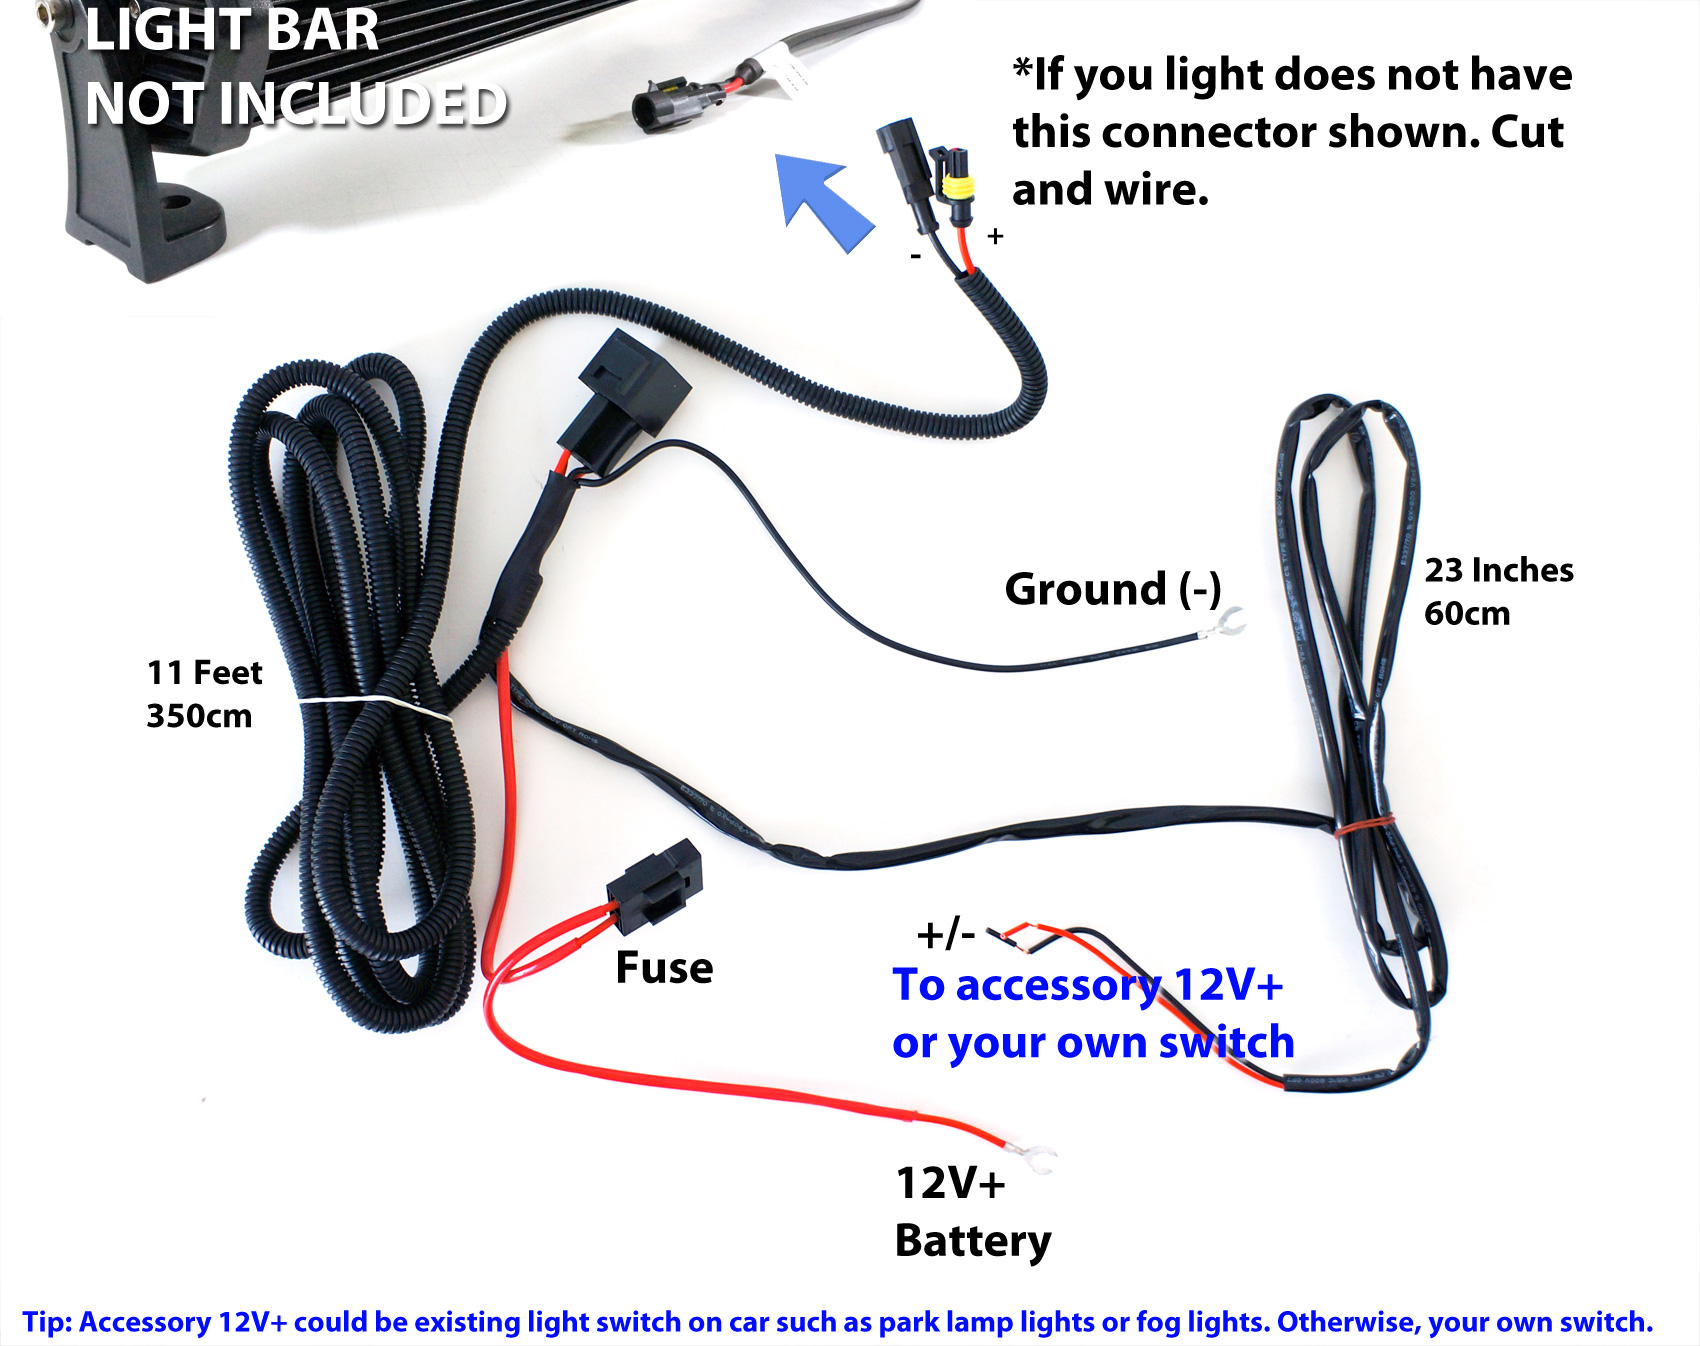 Relay Wiring With Switch And Harness About Diagram Harley Rocker Universal For 36w 72w Led Light Bars Ebay Power